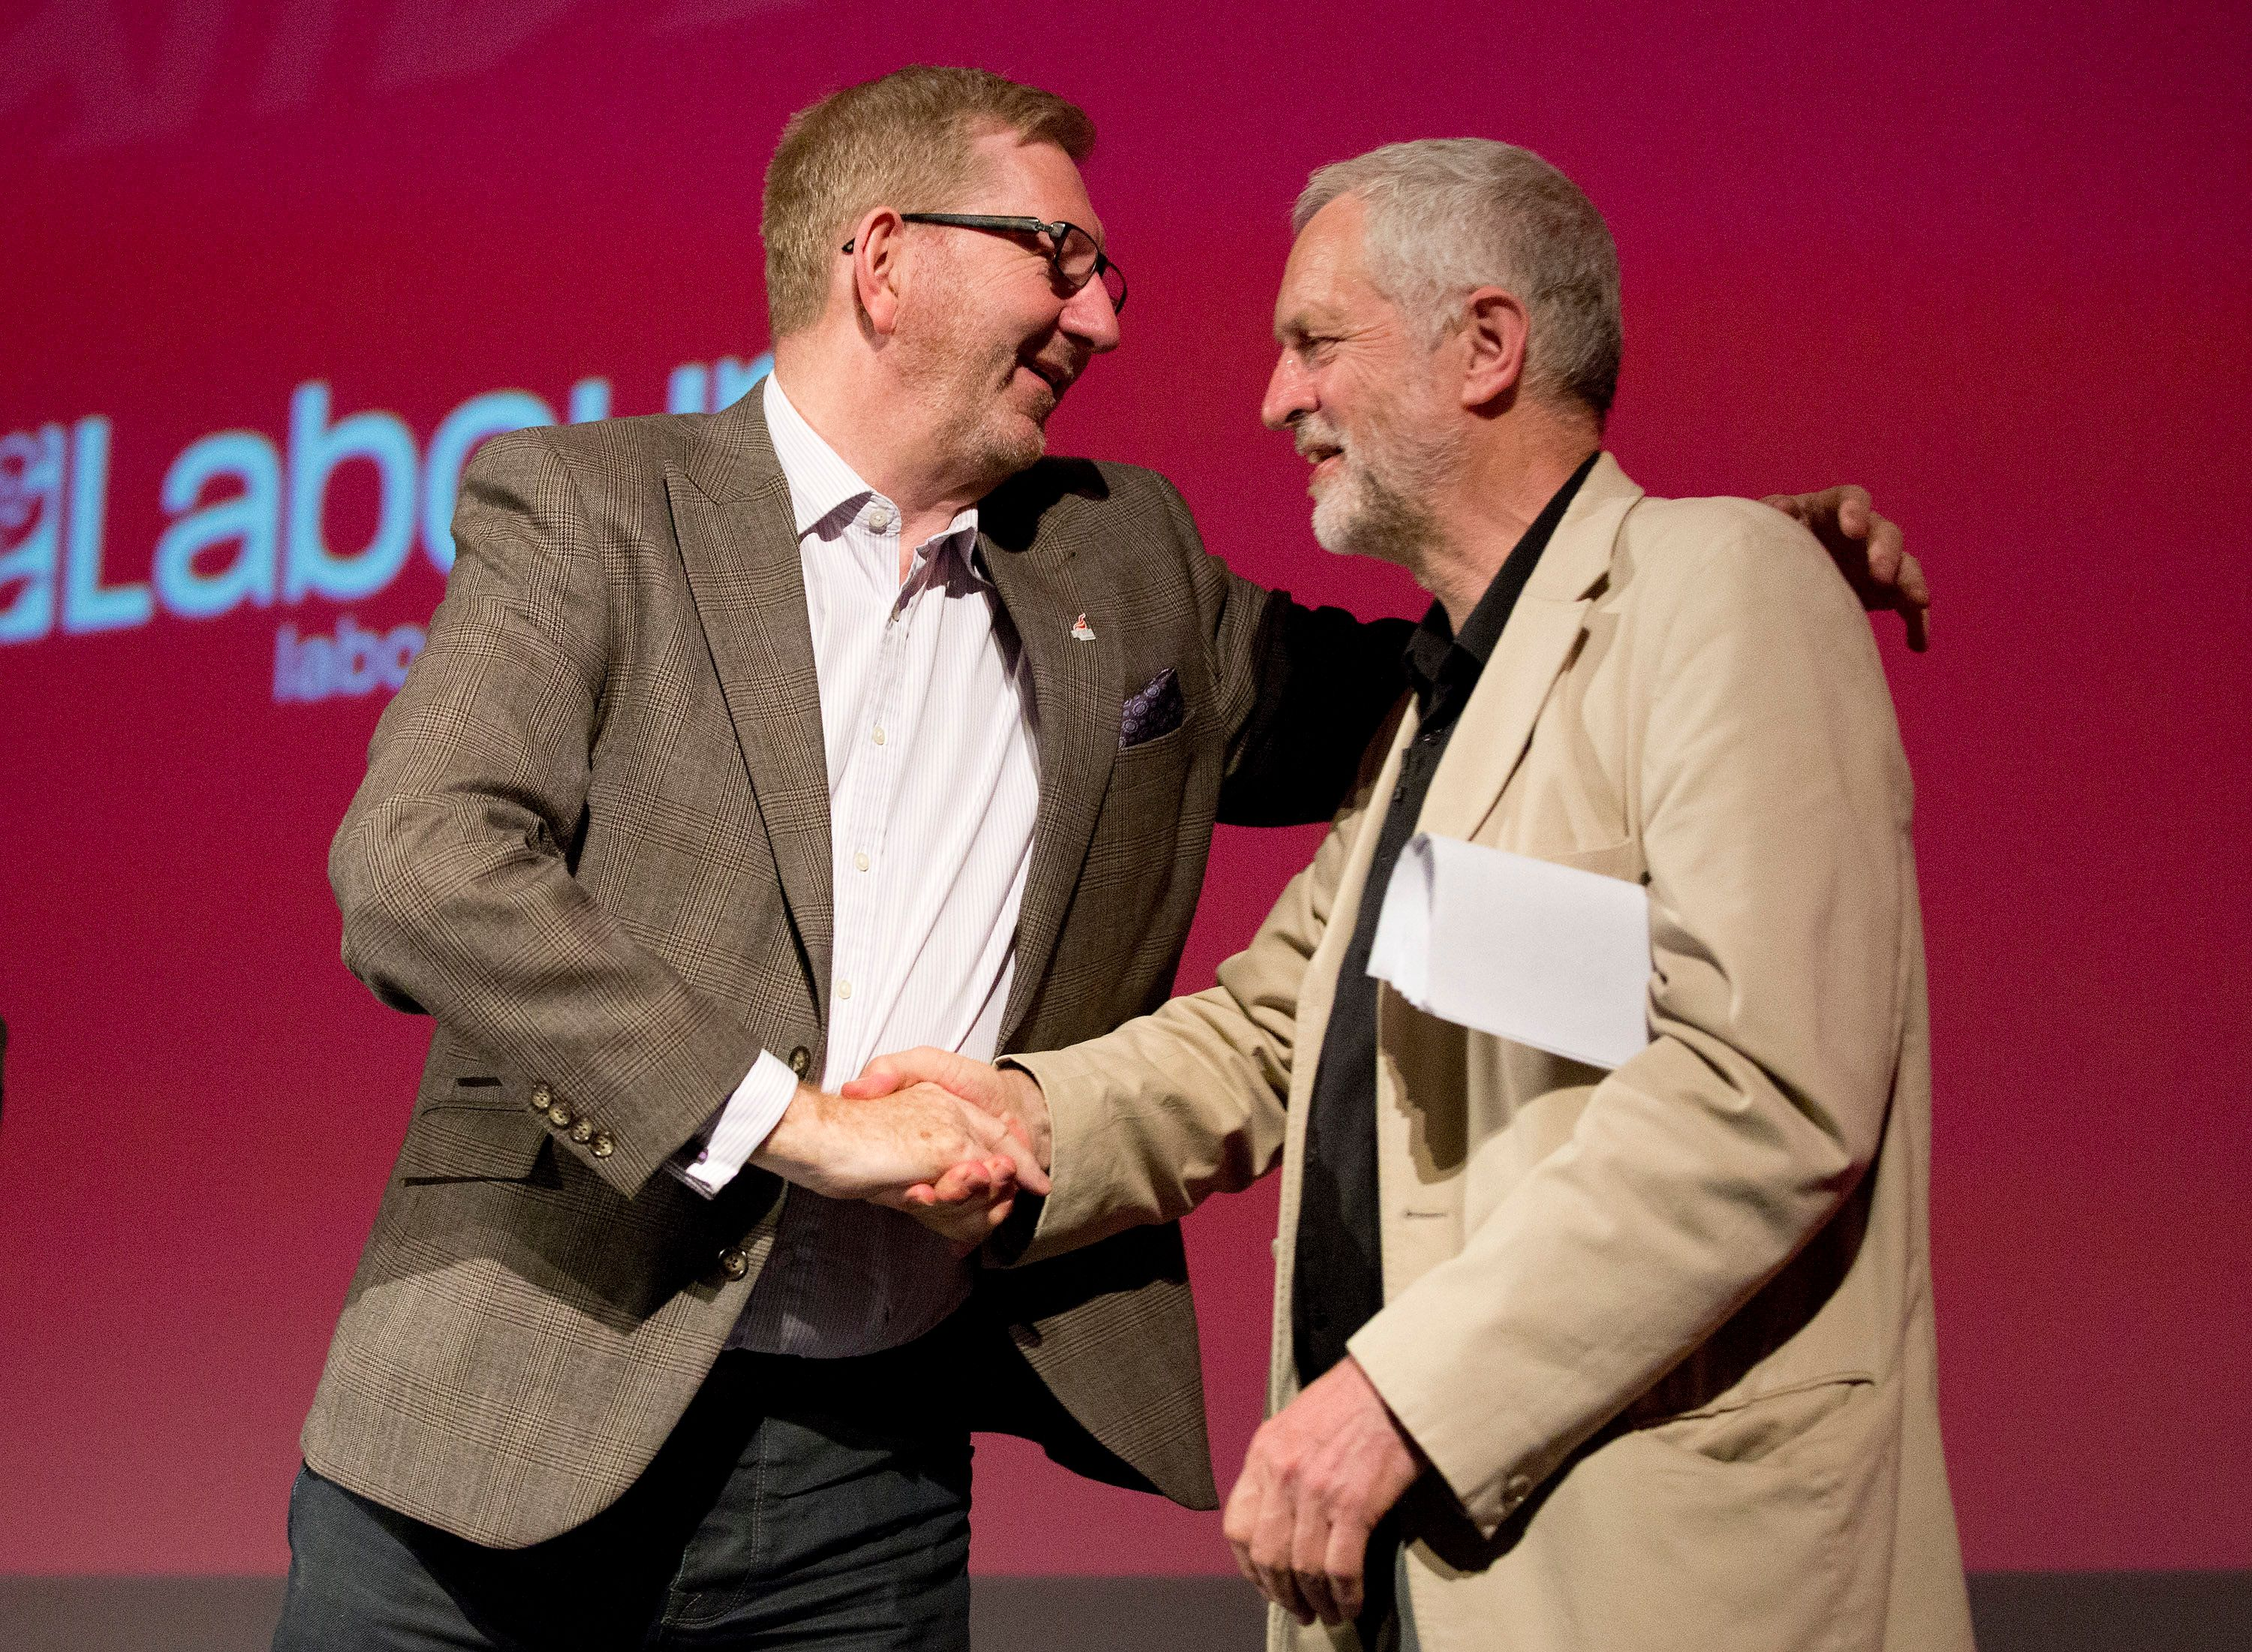 Corbyn Ally And Union Boss Len McCluskey Turns OnJewish Leaders After Wreath